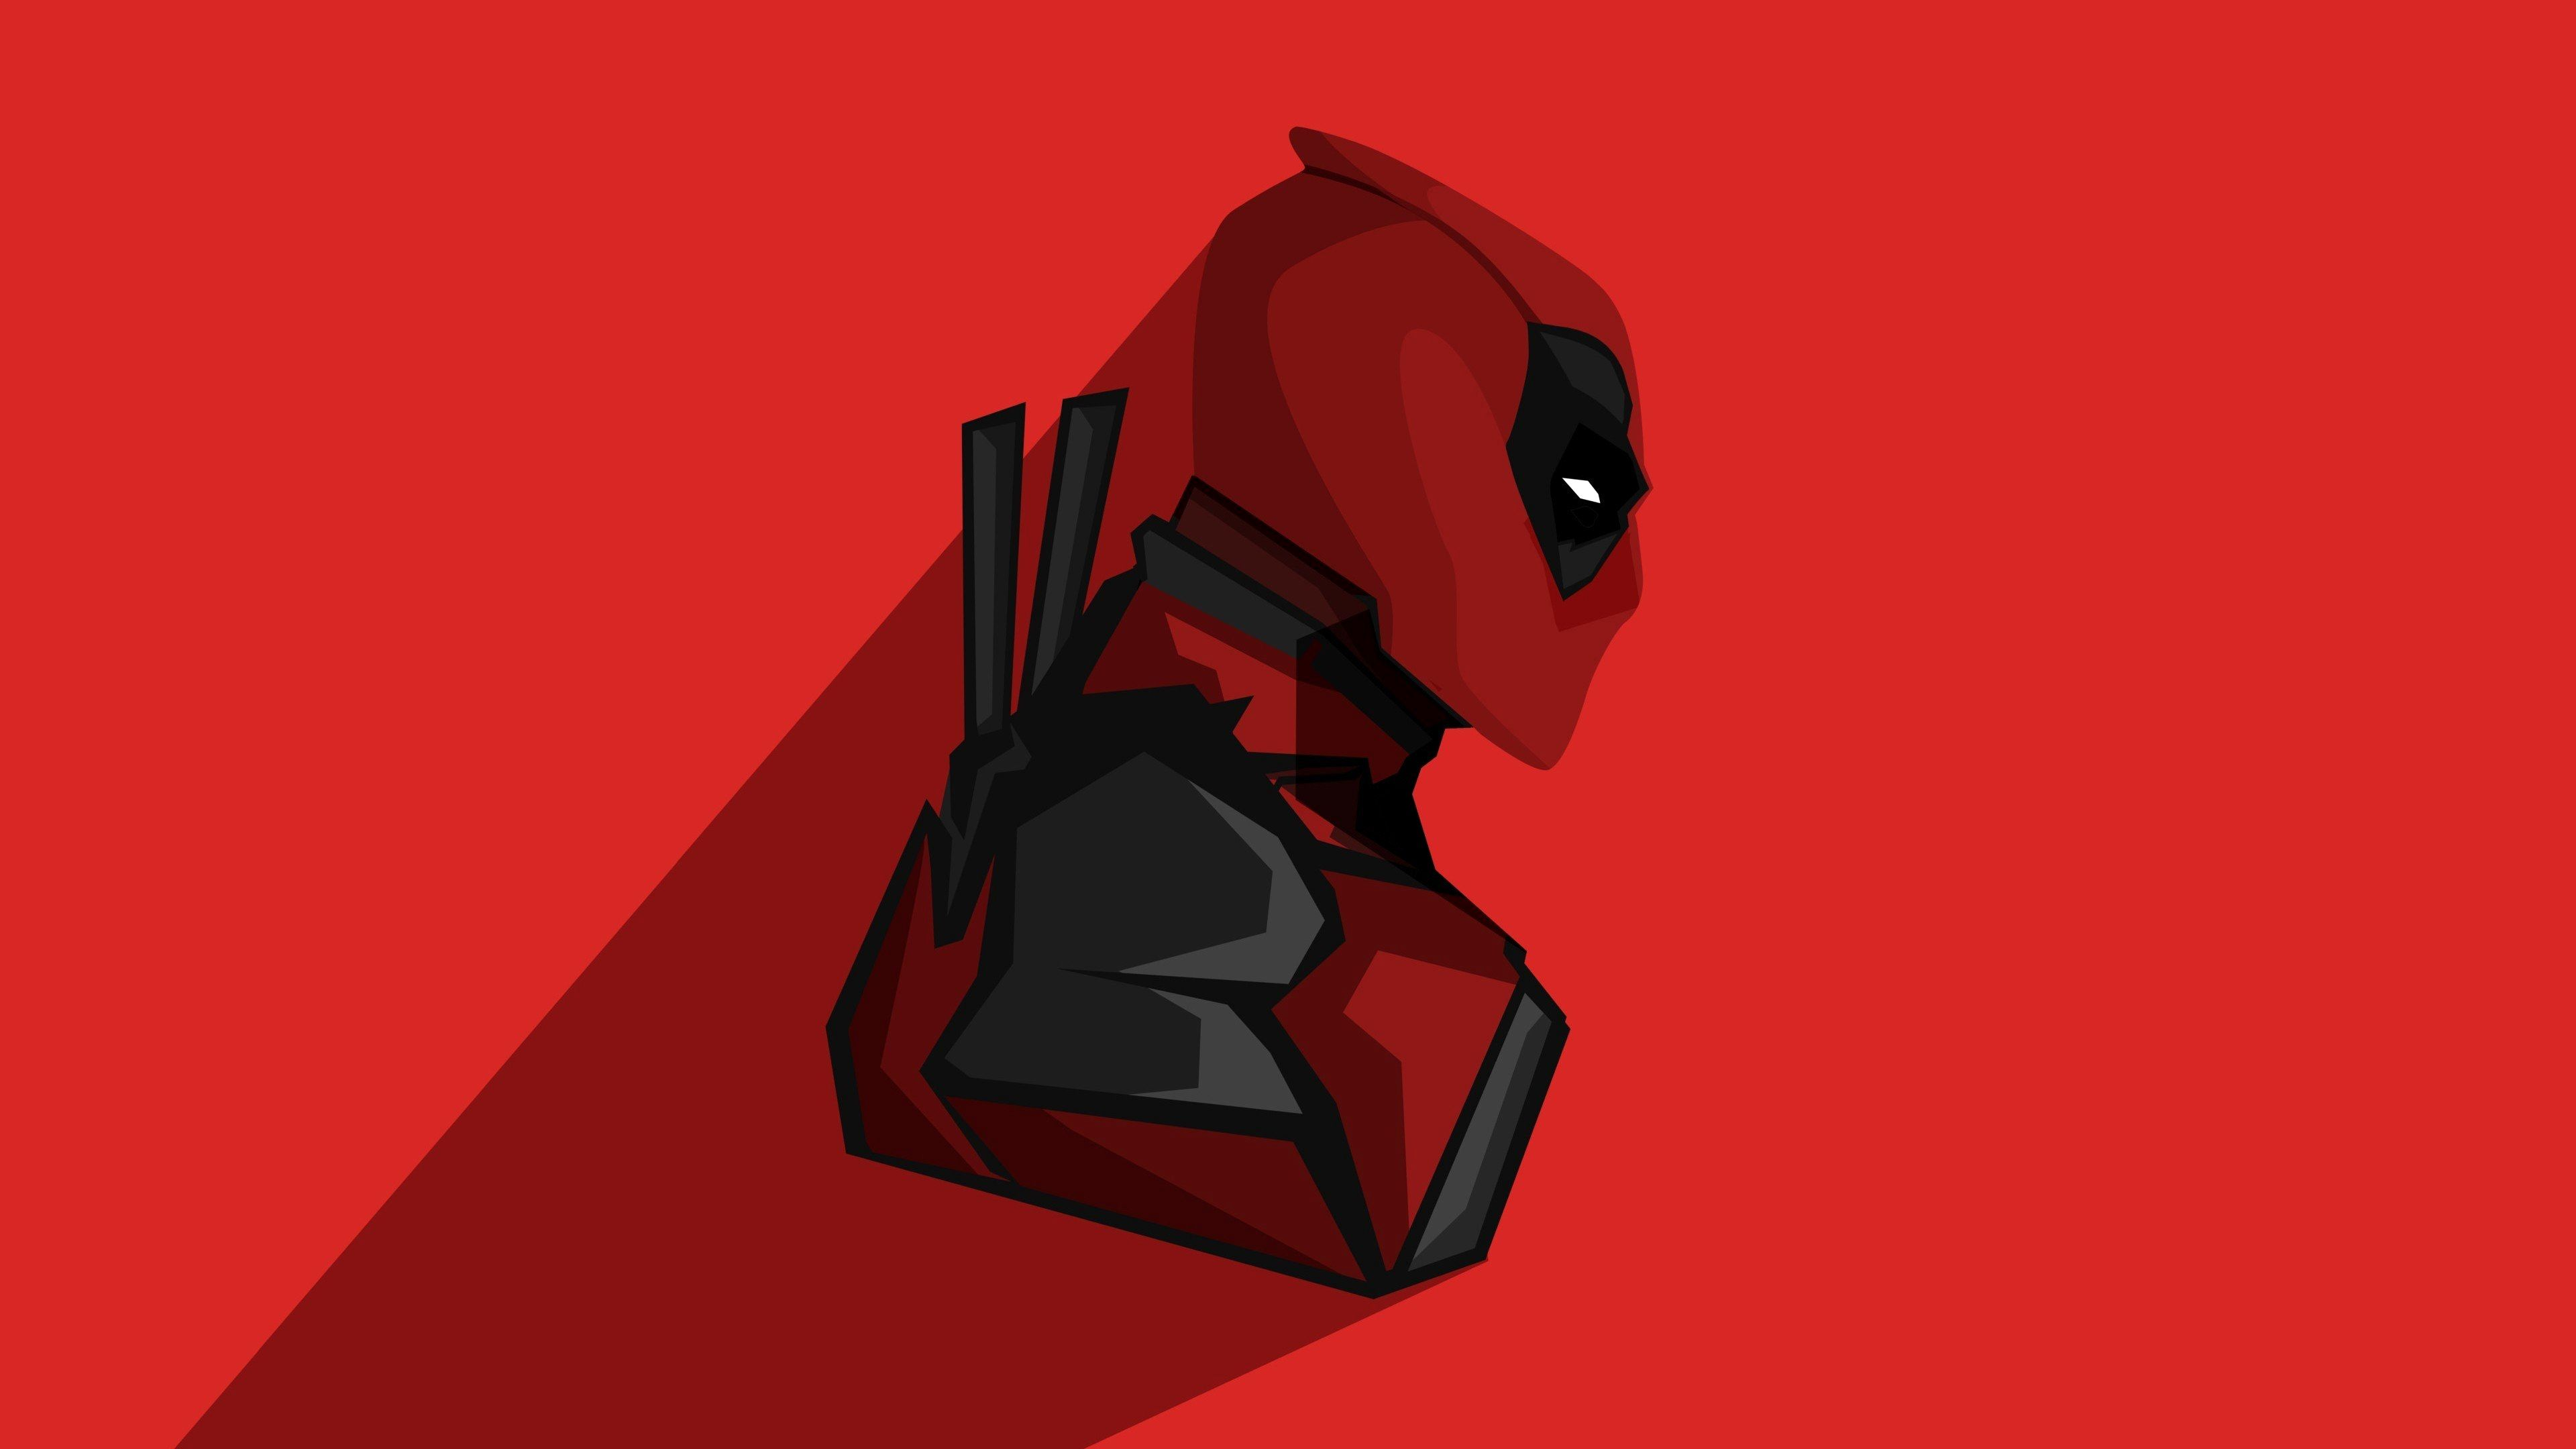 4k Wallpaper For Pc Deadpool Trick Check More At Https